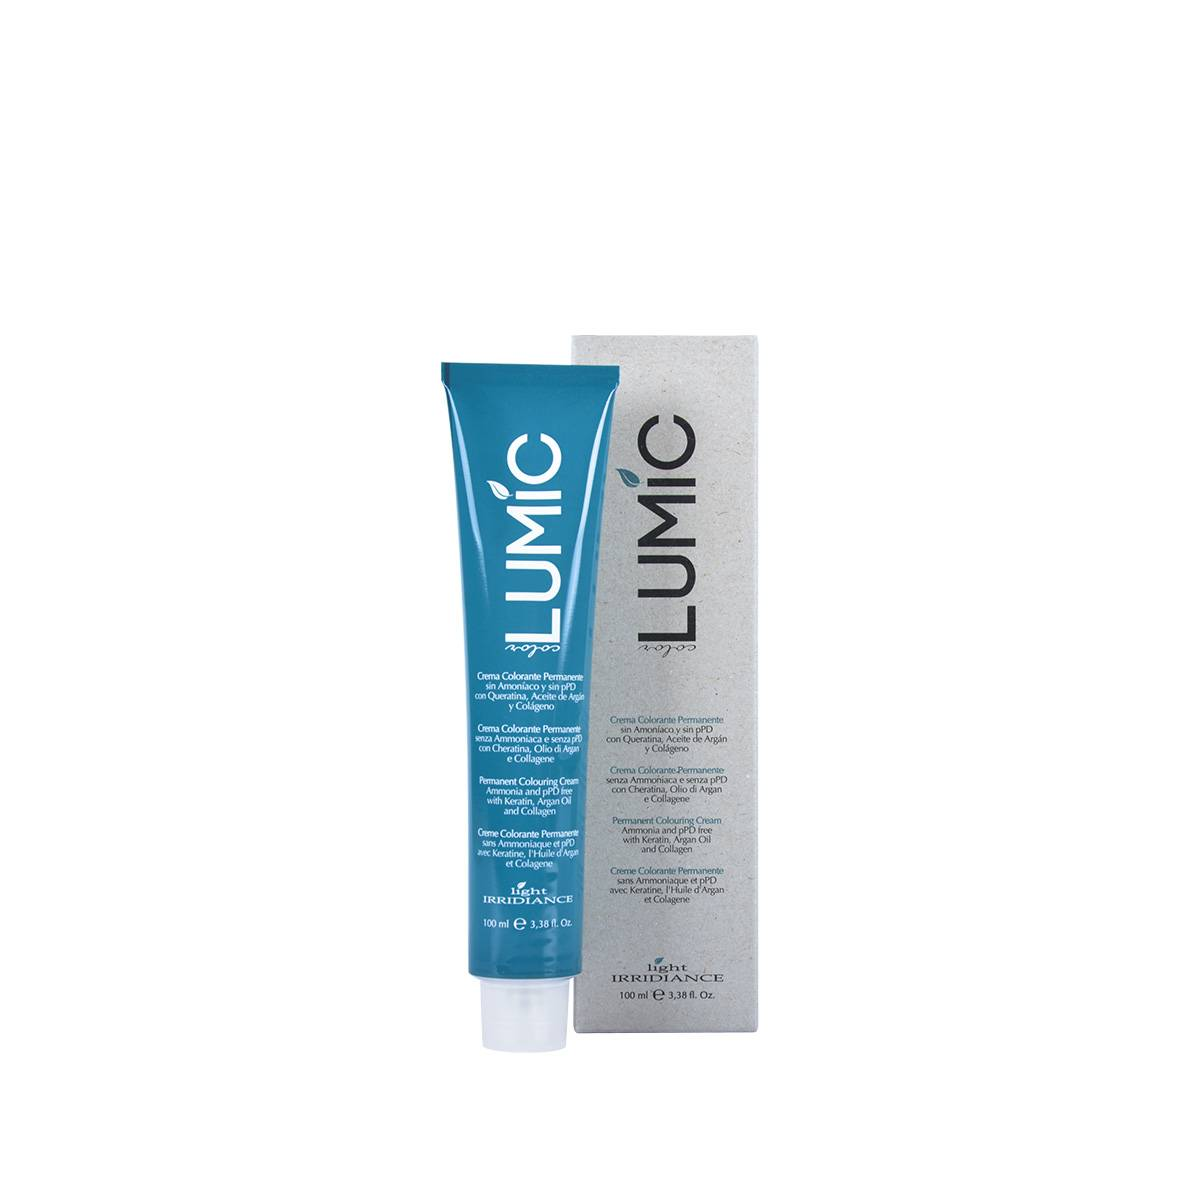 Lumic Crema Colore 100ml Neutro